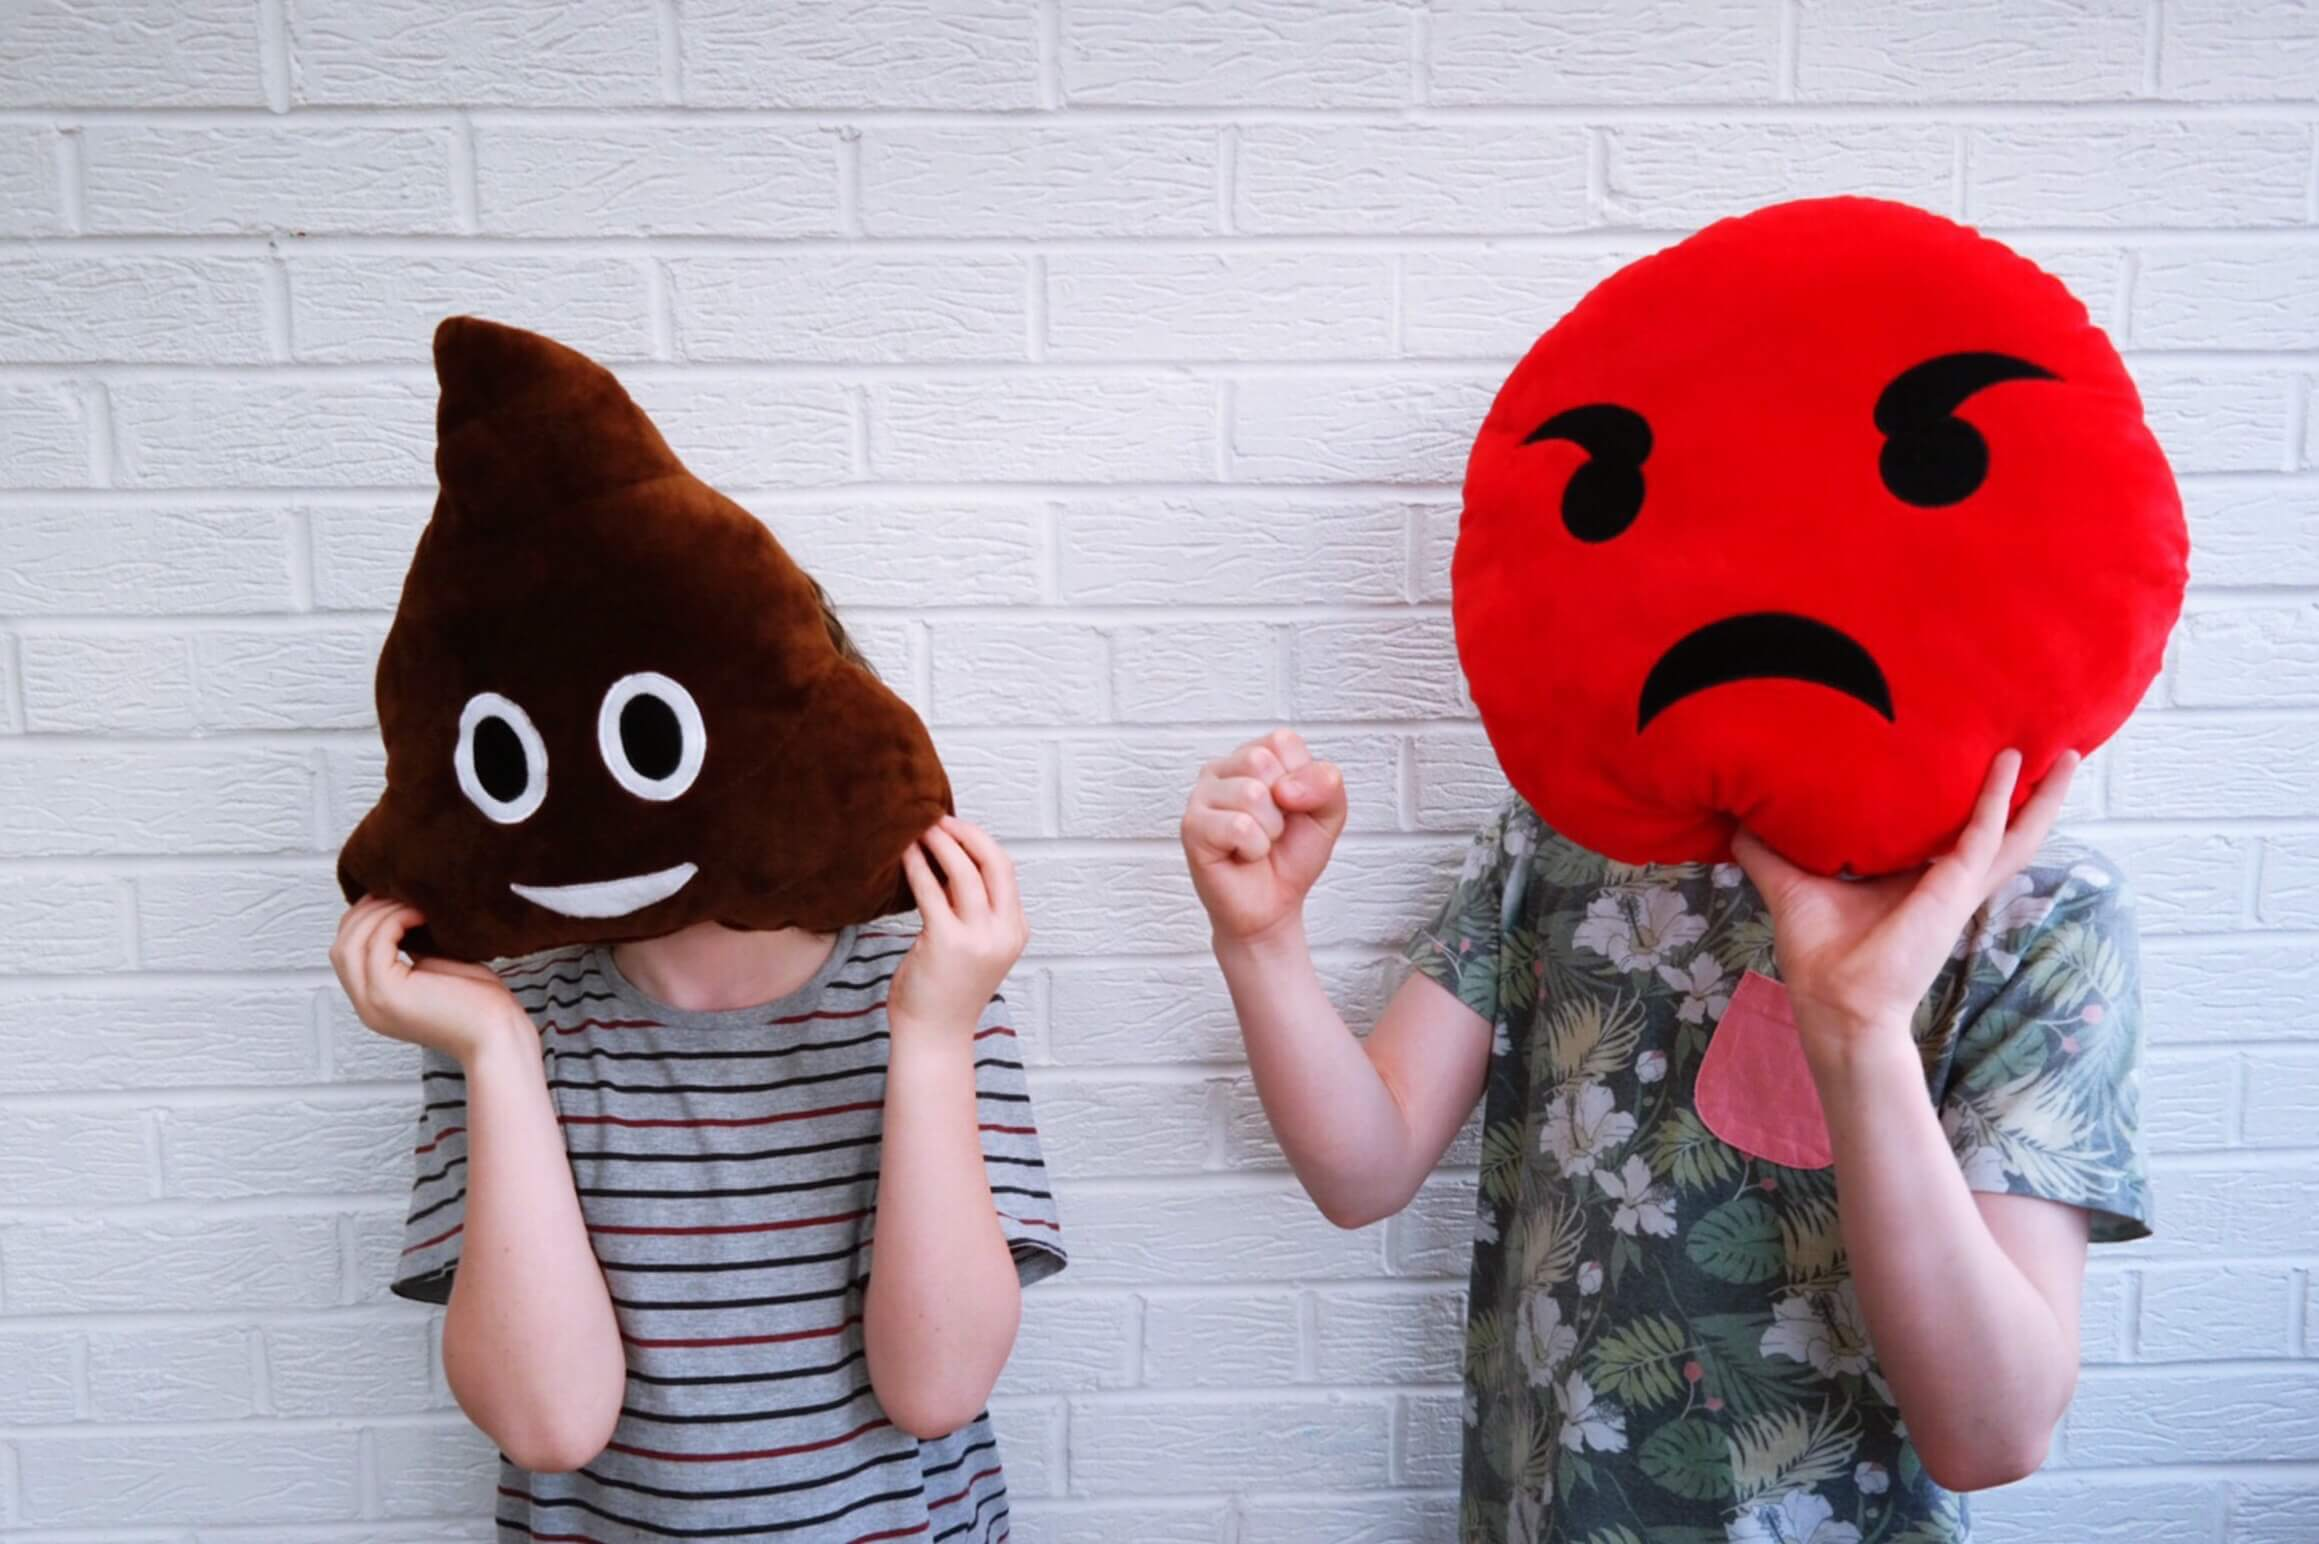 How to Let Go of Anger And Resentment